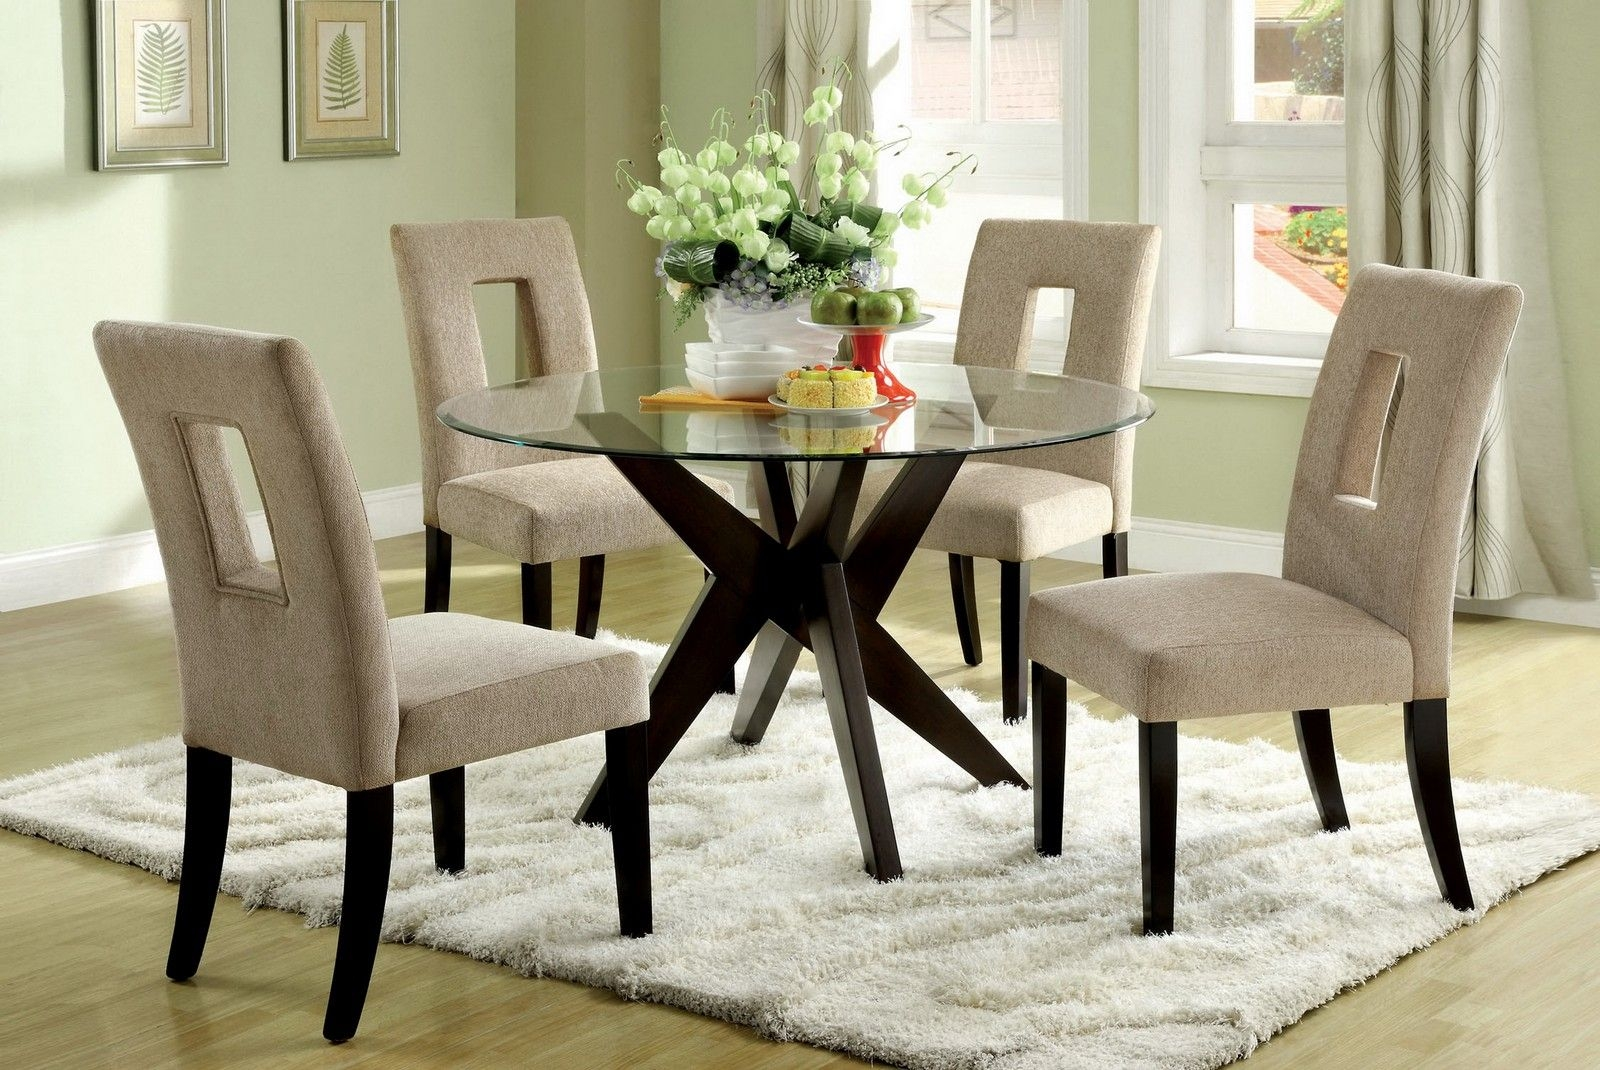 Round Glass Dining Table Wood Base Foter